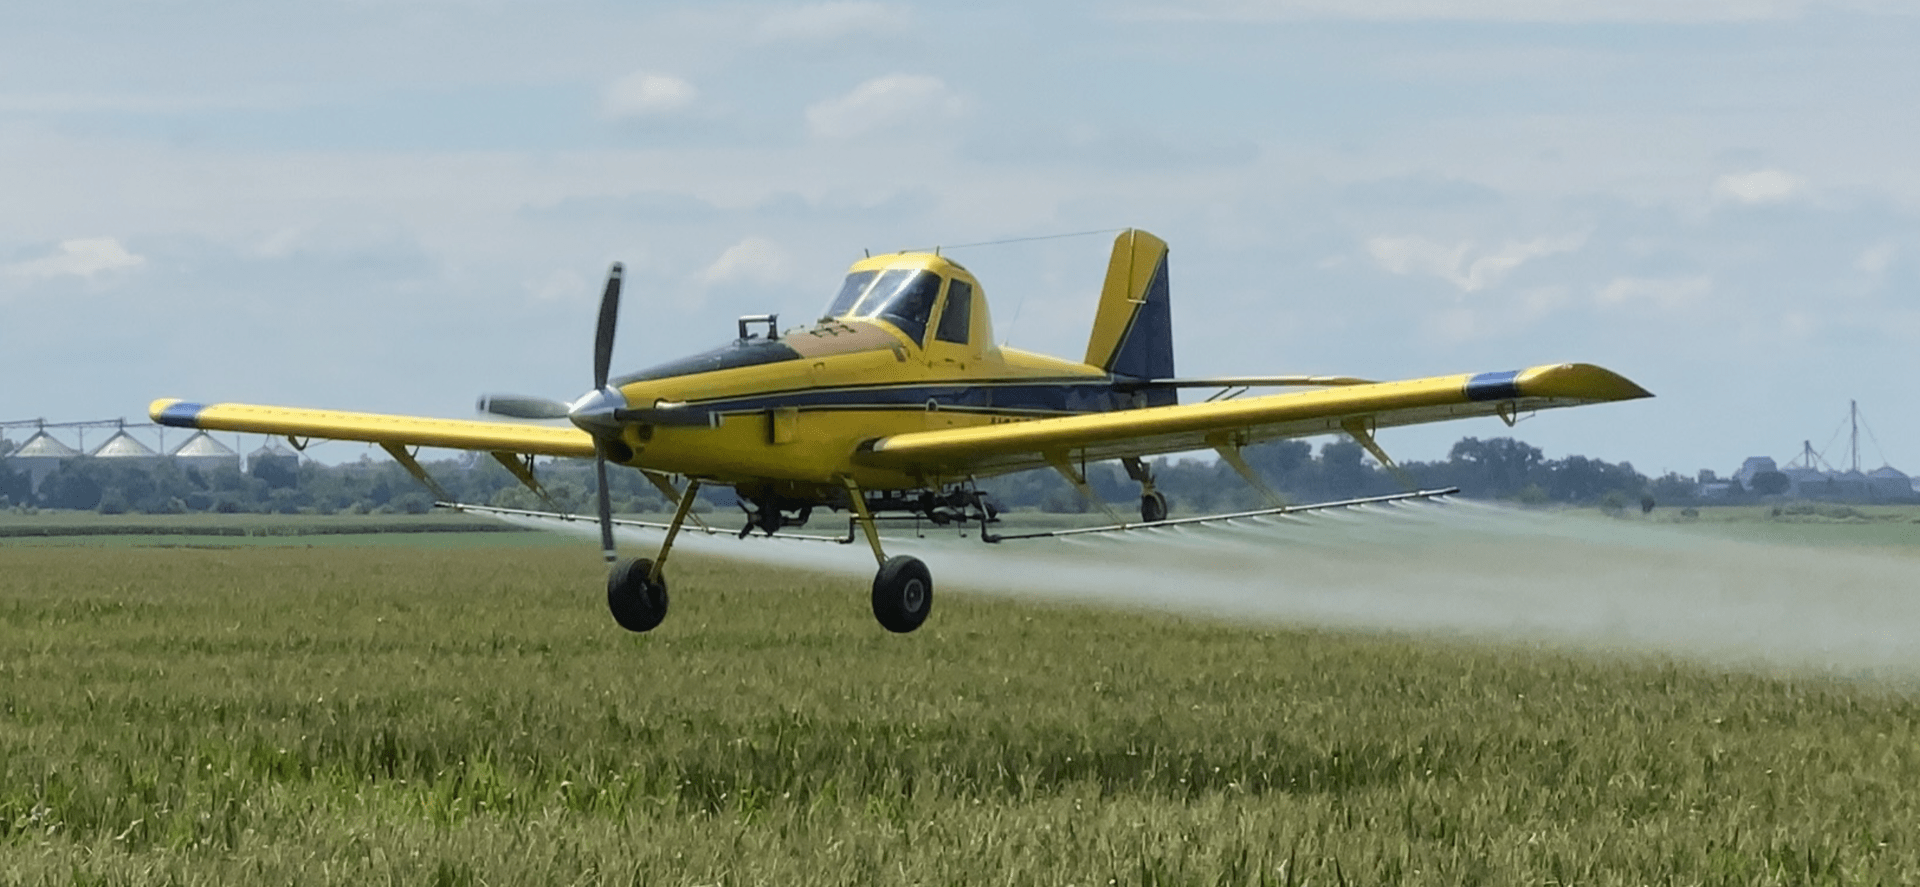 Airplane applying fungicide over a field of corn.